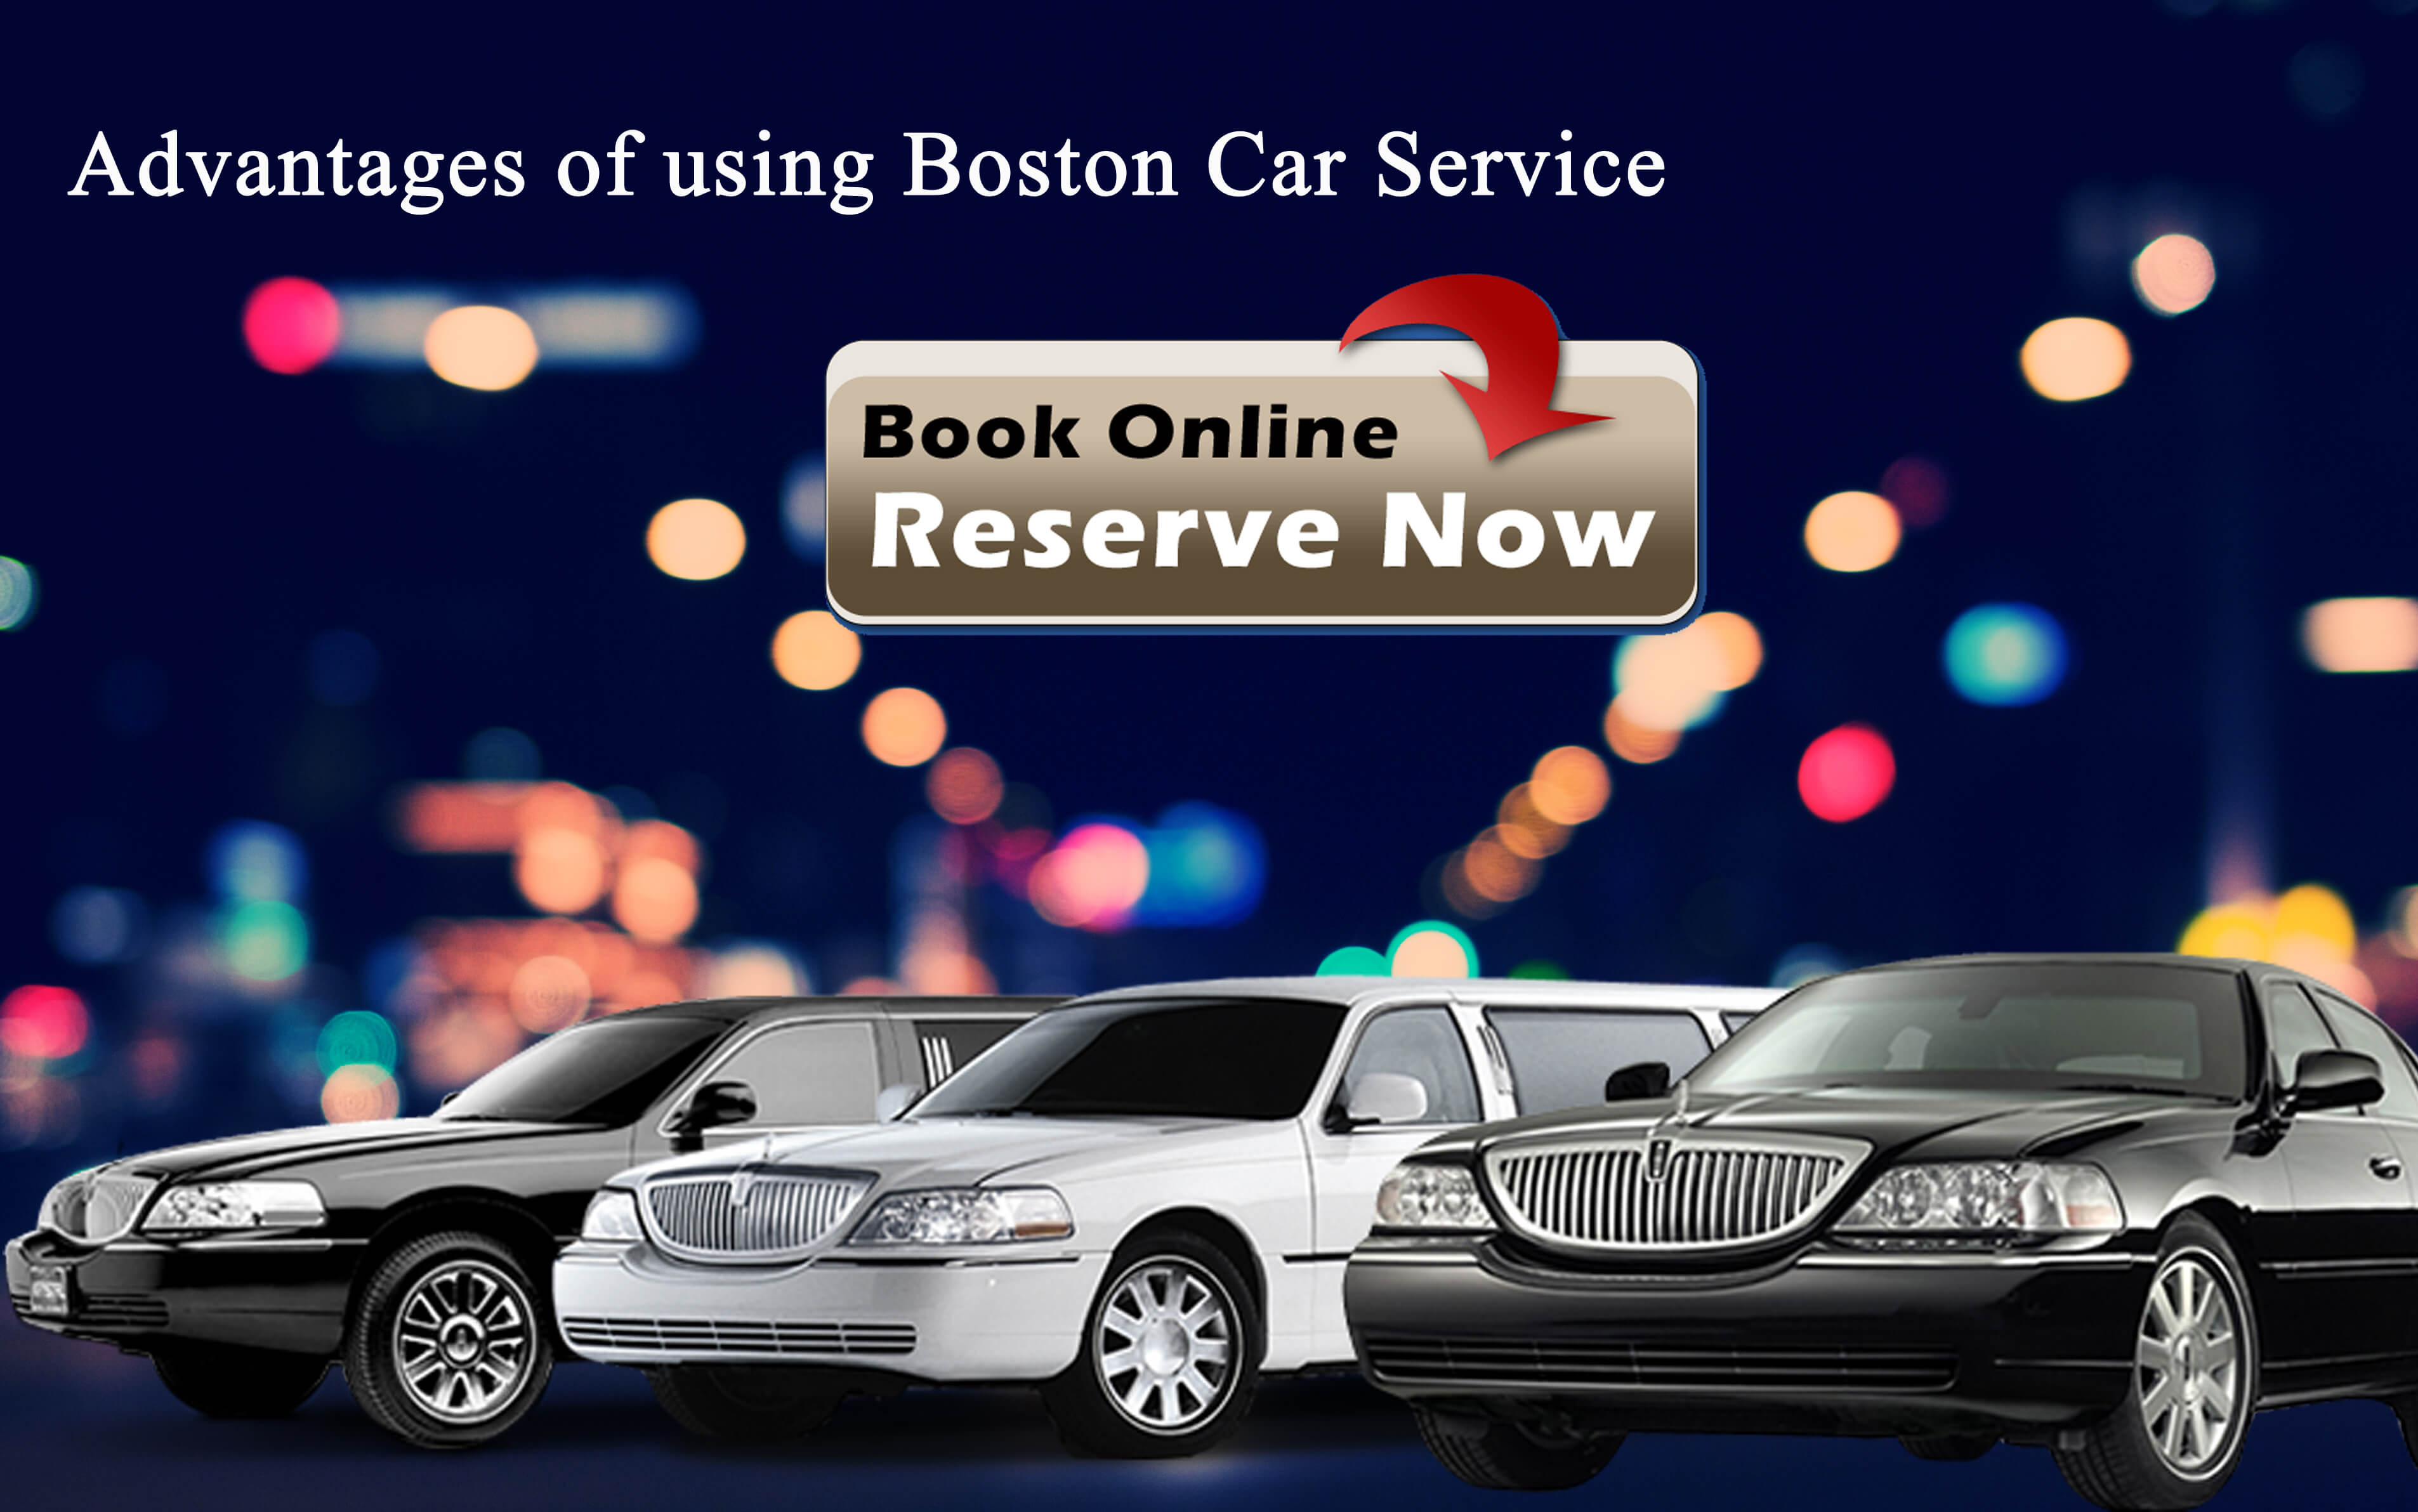 Advantages-of-using-Boston-Car-Service Advantages of using Boston Car Service